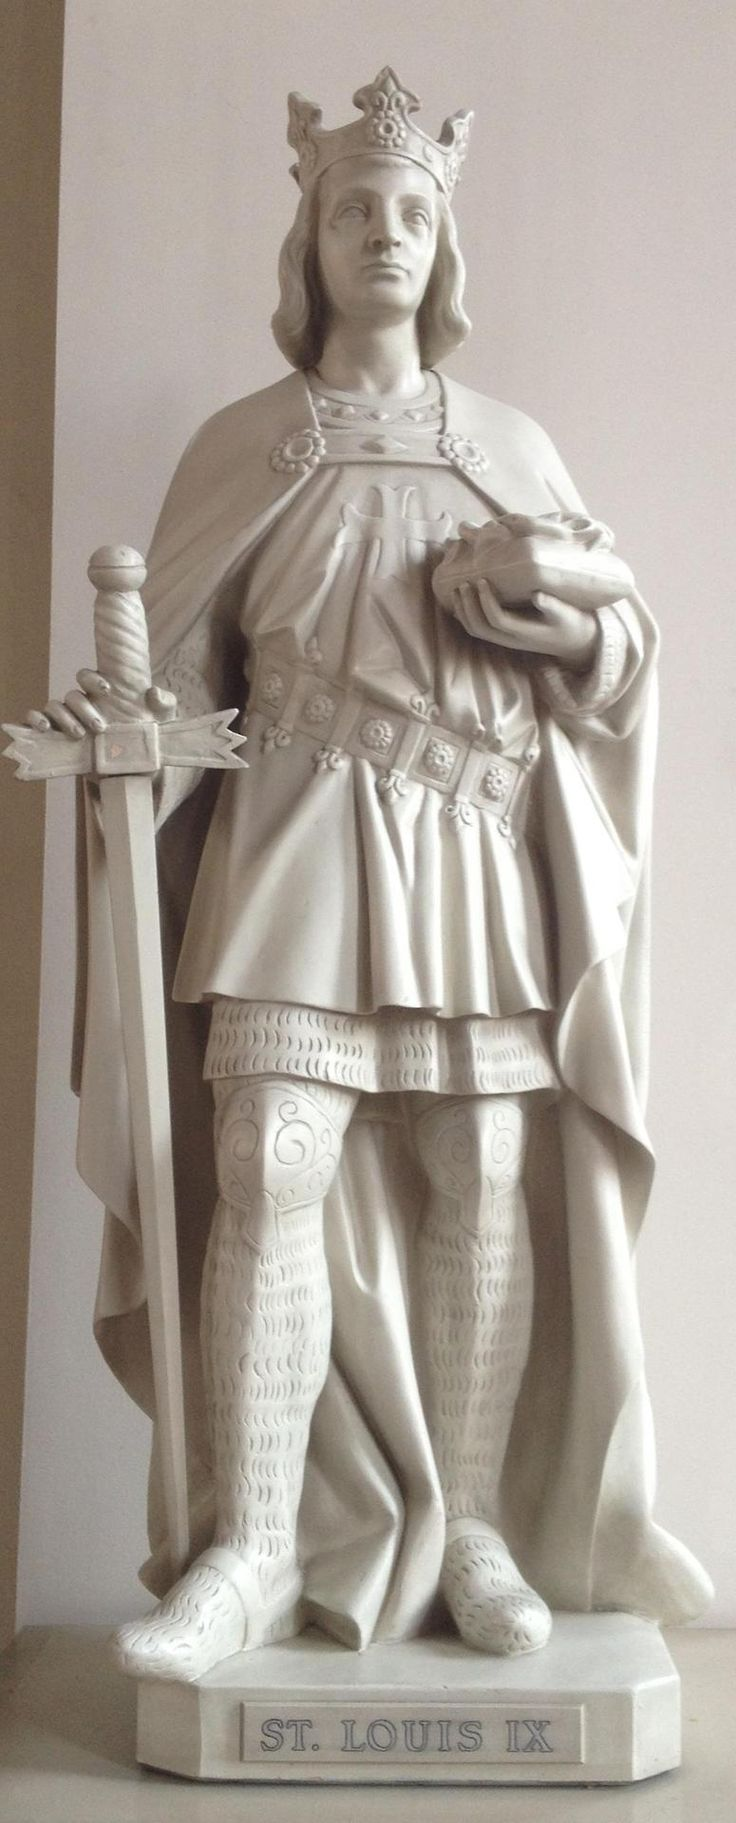 August 25 is the feast day of Saint Louis IX, King of France